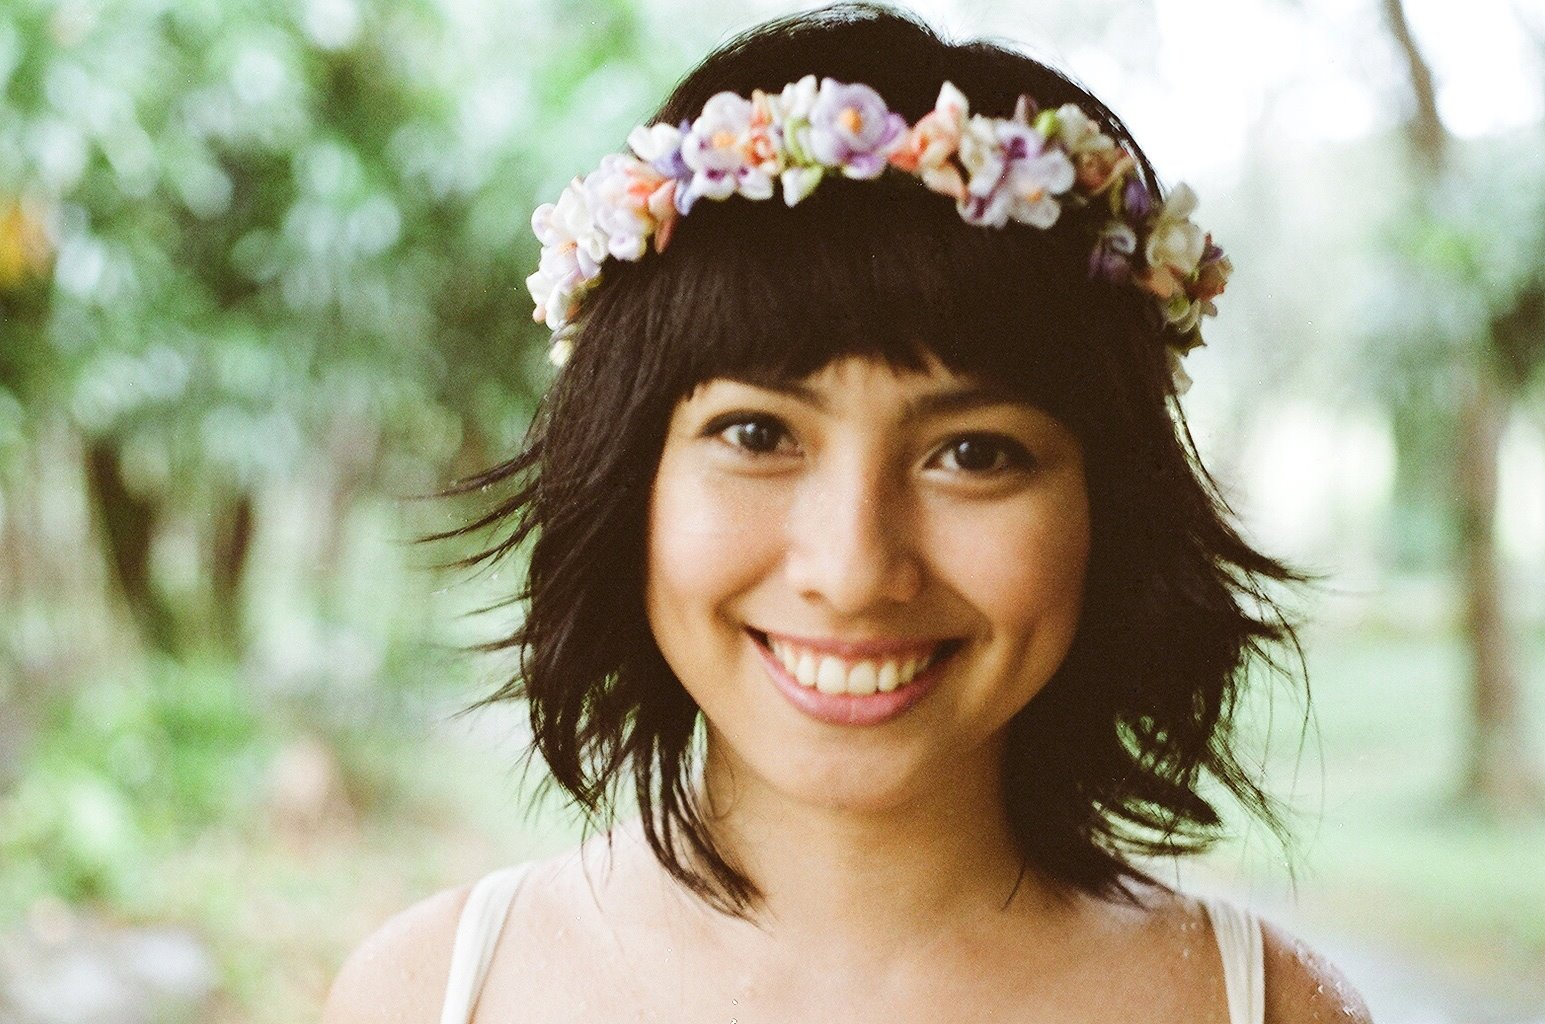 Diy floral crown metamorphosis but no izmirmasajfo